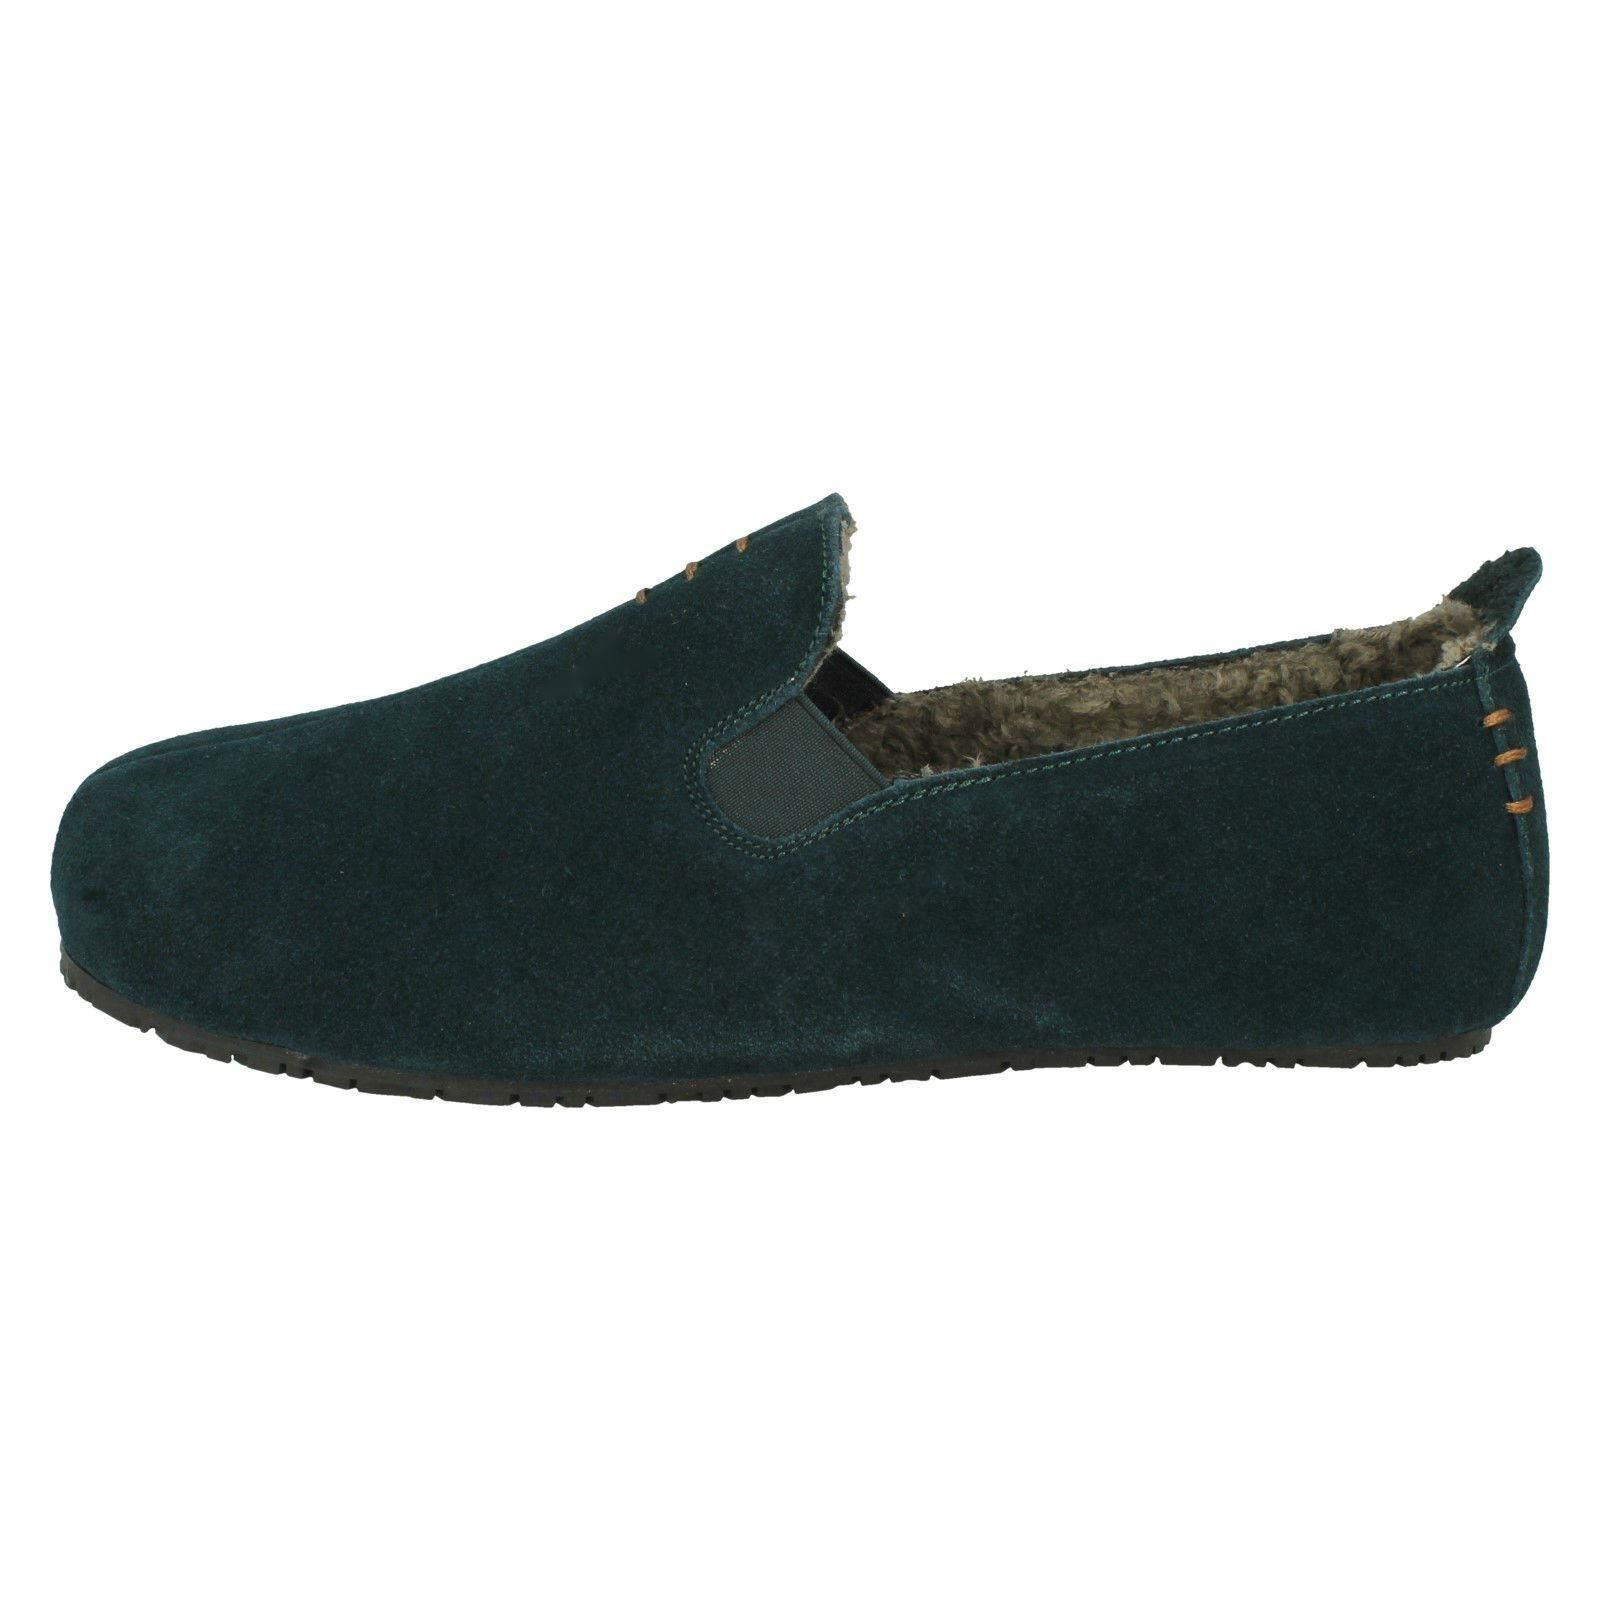 Mens Clarks Casual Rounded Toe Slip On Suede Comfort